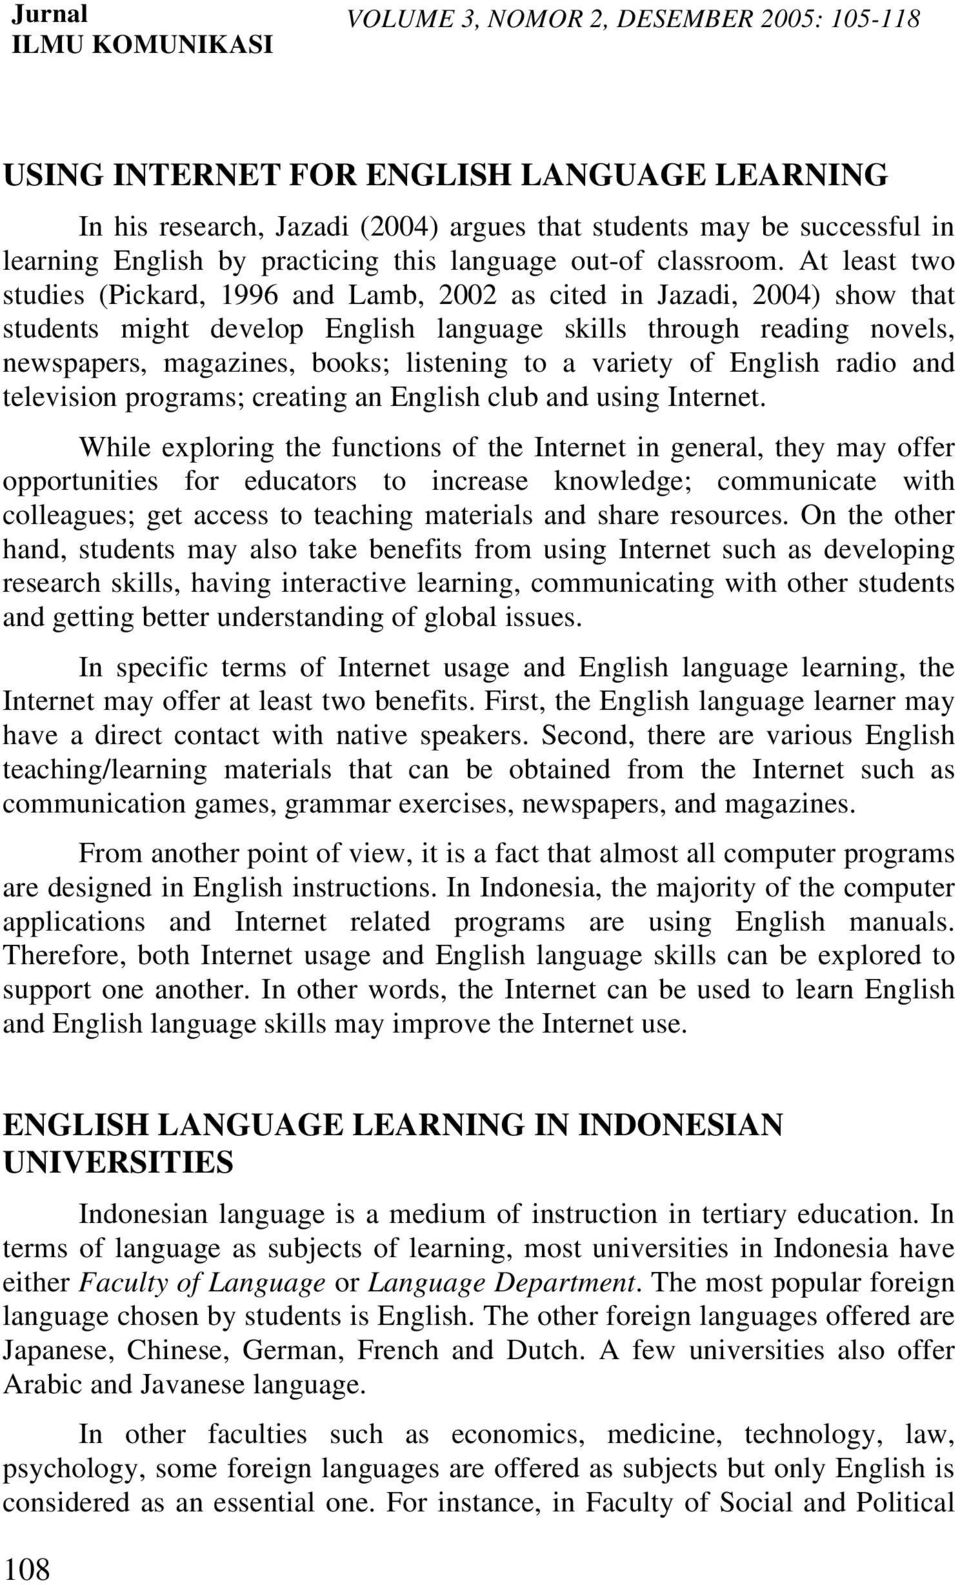 At least two studies (Pickard, 1996 and Lamb, 2002 as cited in Jazadi, 2004) show that students might develop English language skills through reading novels, newspapers, magazines, books; listening